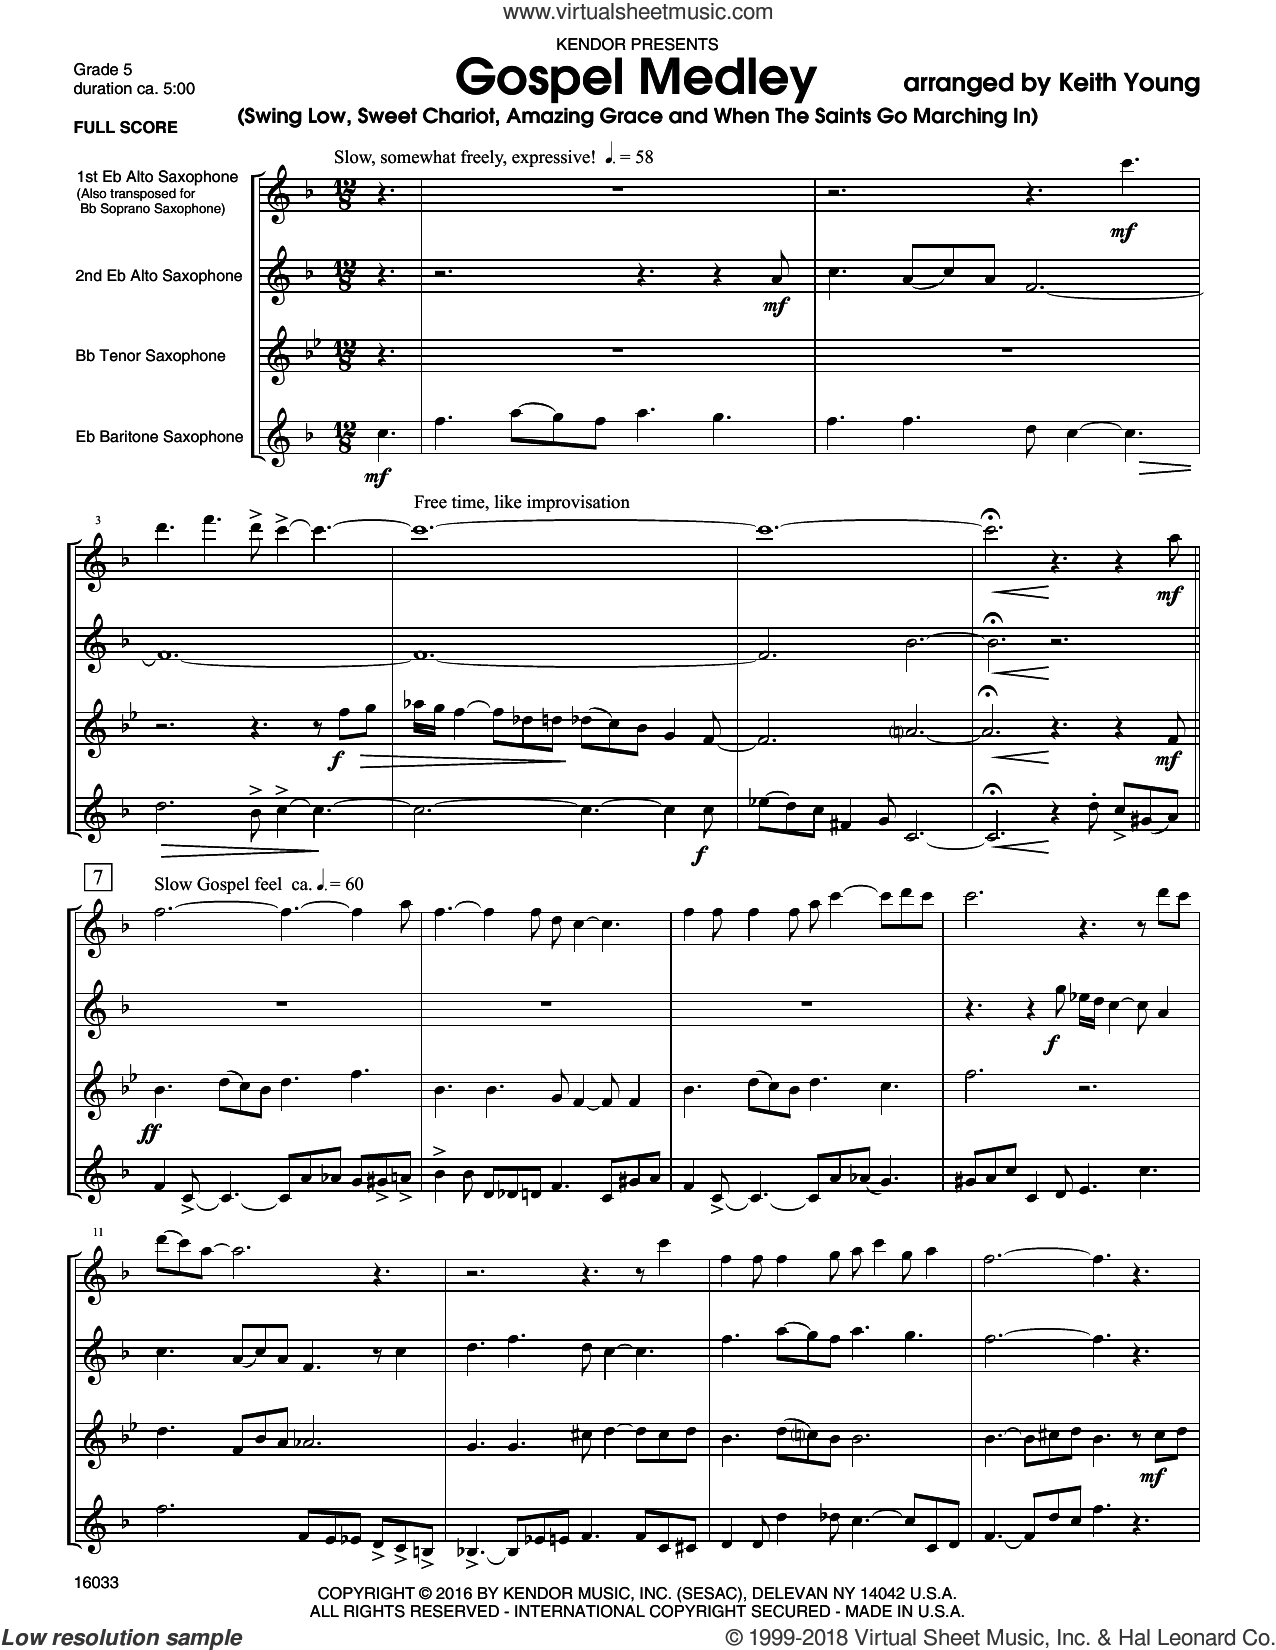 Gospel Medley (COMPLETE) sheet music for saxophone quartet by Keith Young, intermediate skill level